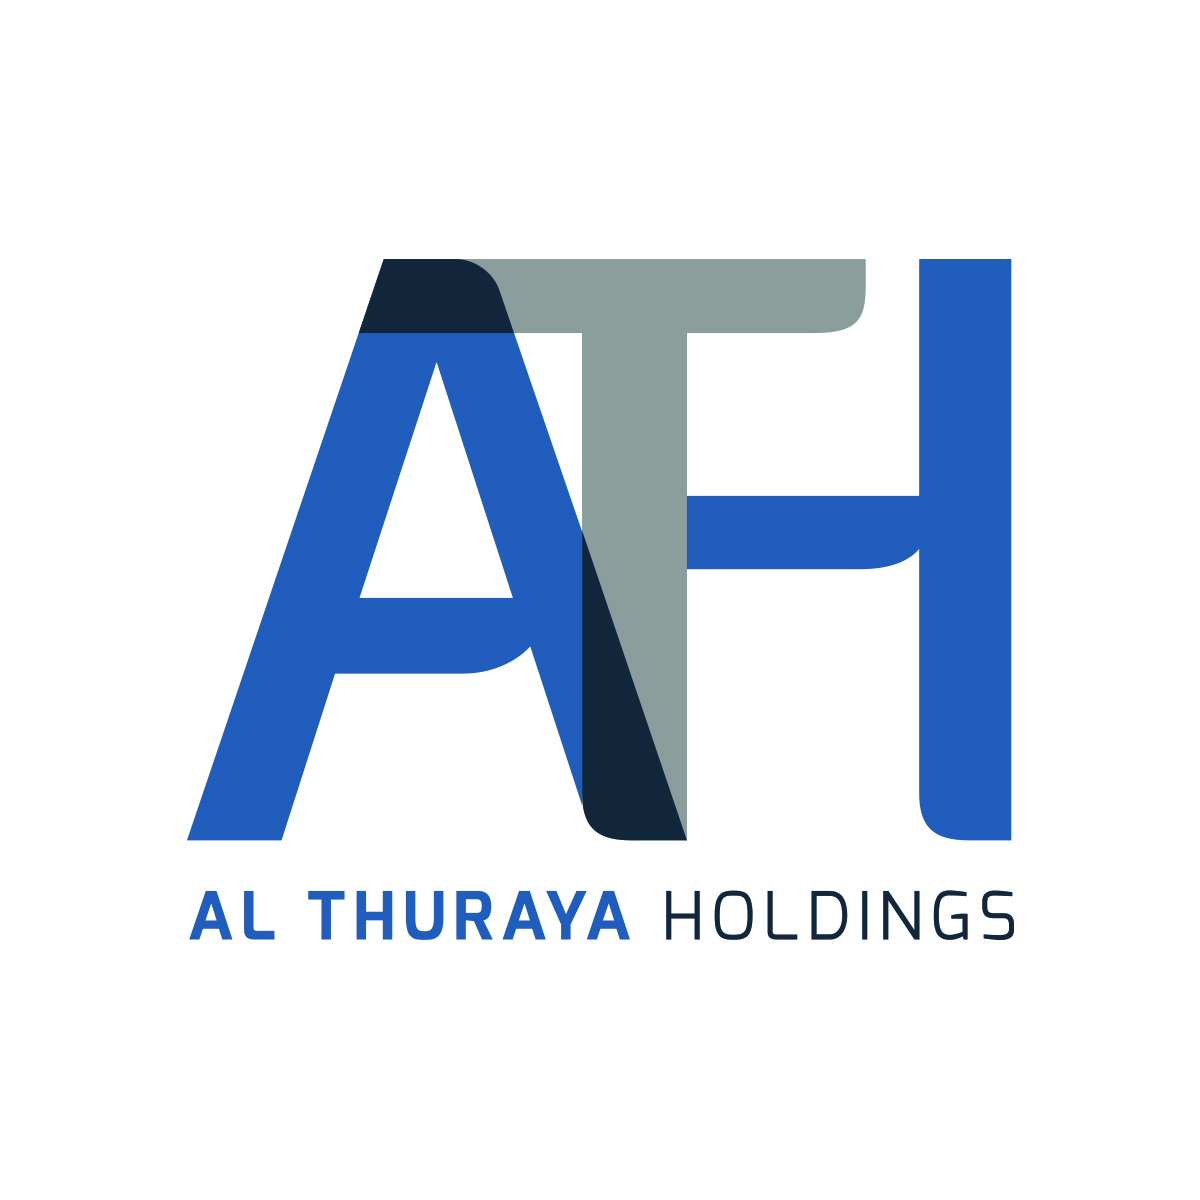 Al Thuraya Holdings Logo